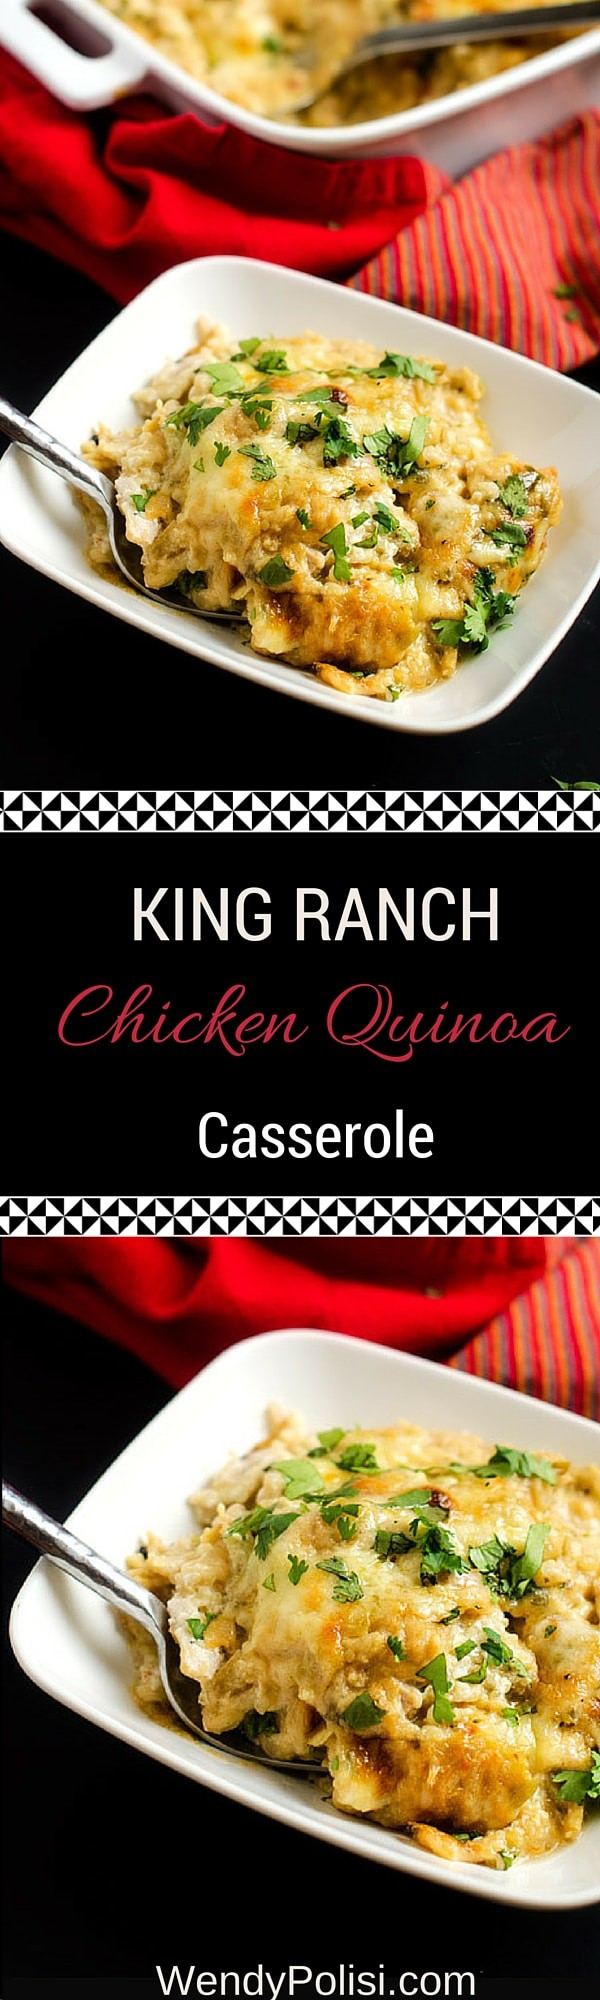 King Ranch Chicken Quinoa Casserole - This make ahead casserole recipe is easy and delicious! - WendyPolisi.com